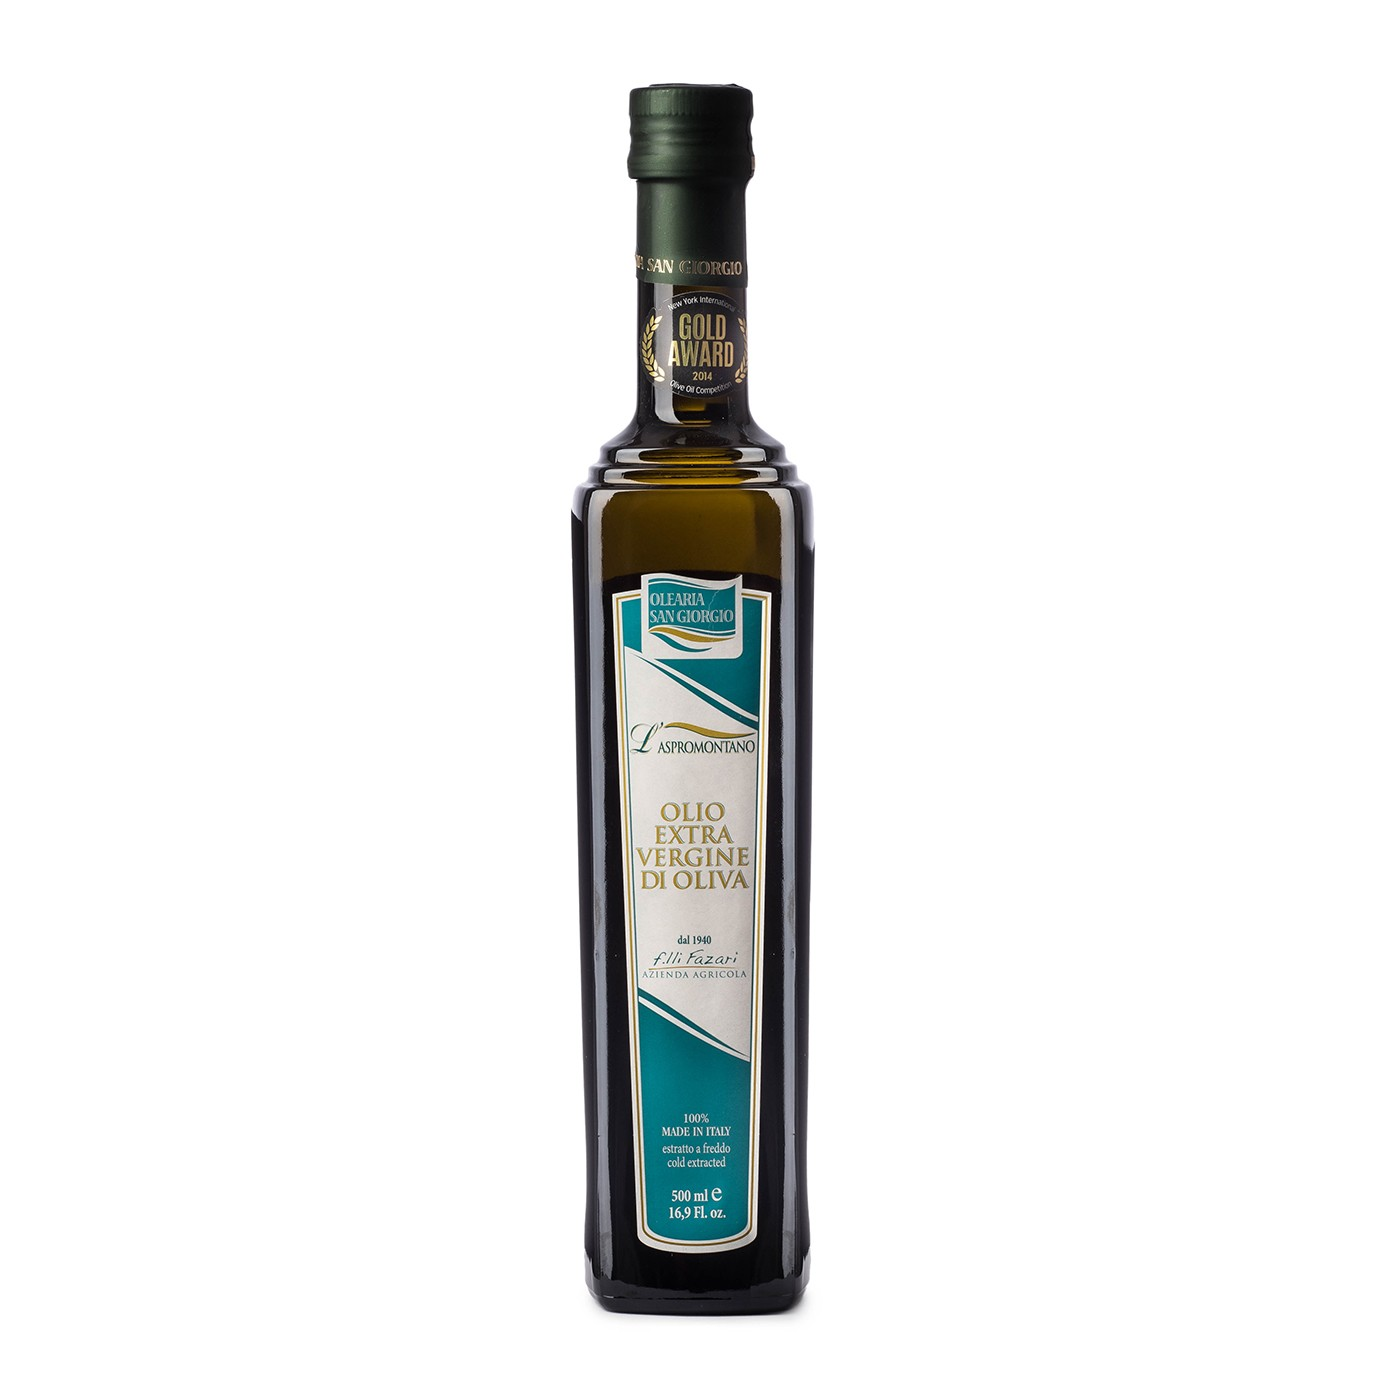 Extra Virgin Olive Oil Aspromontano 16.9 oz